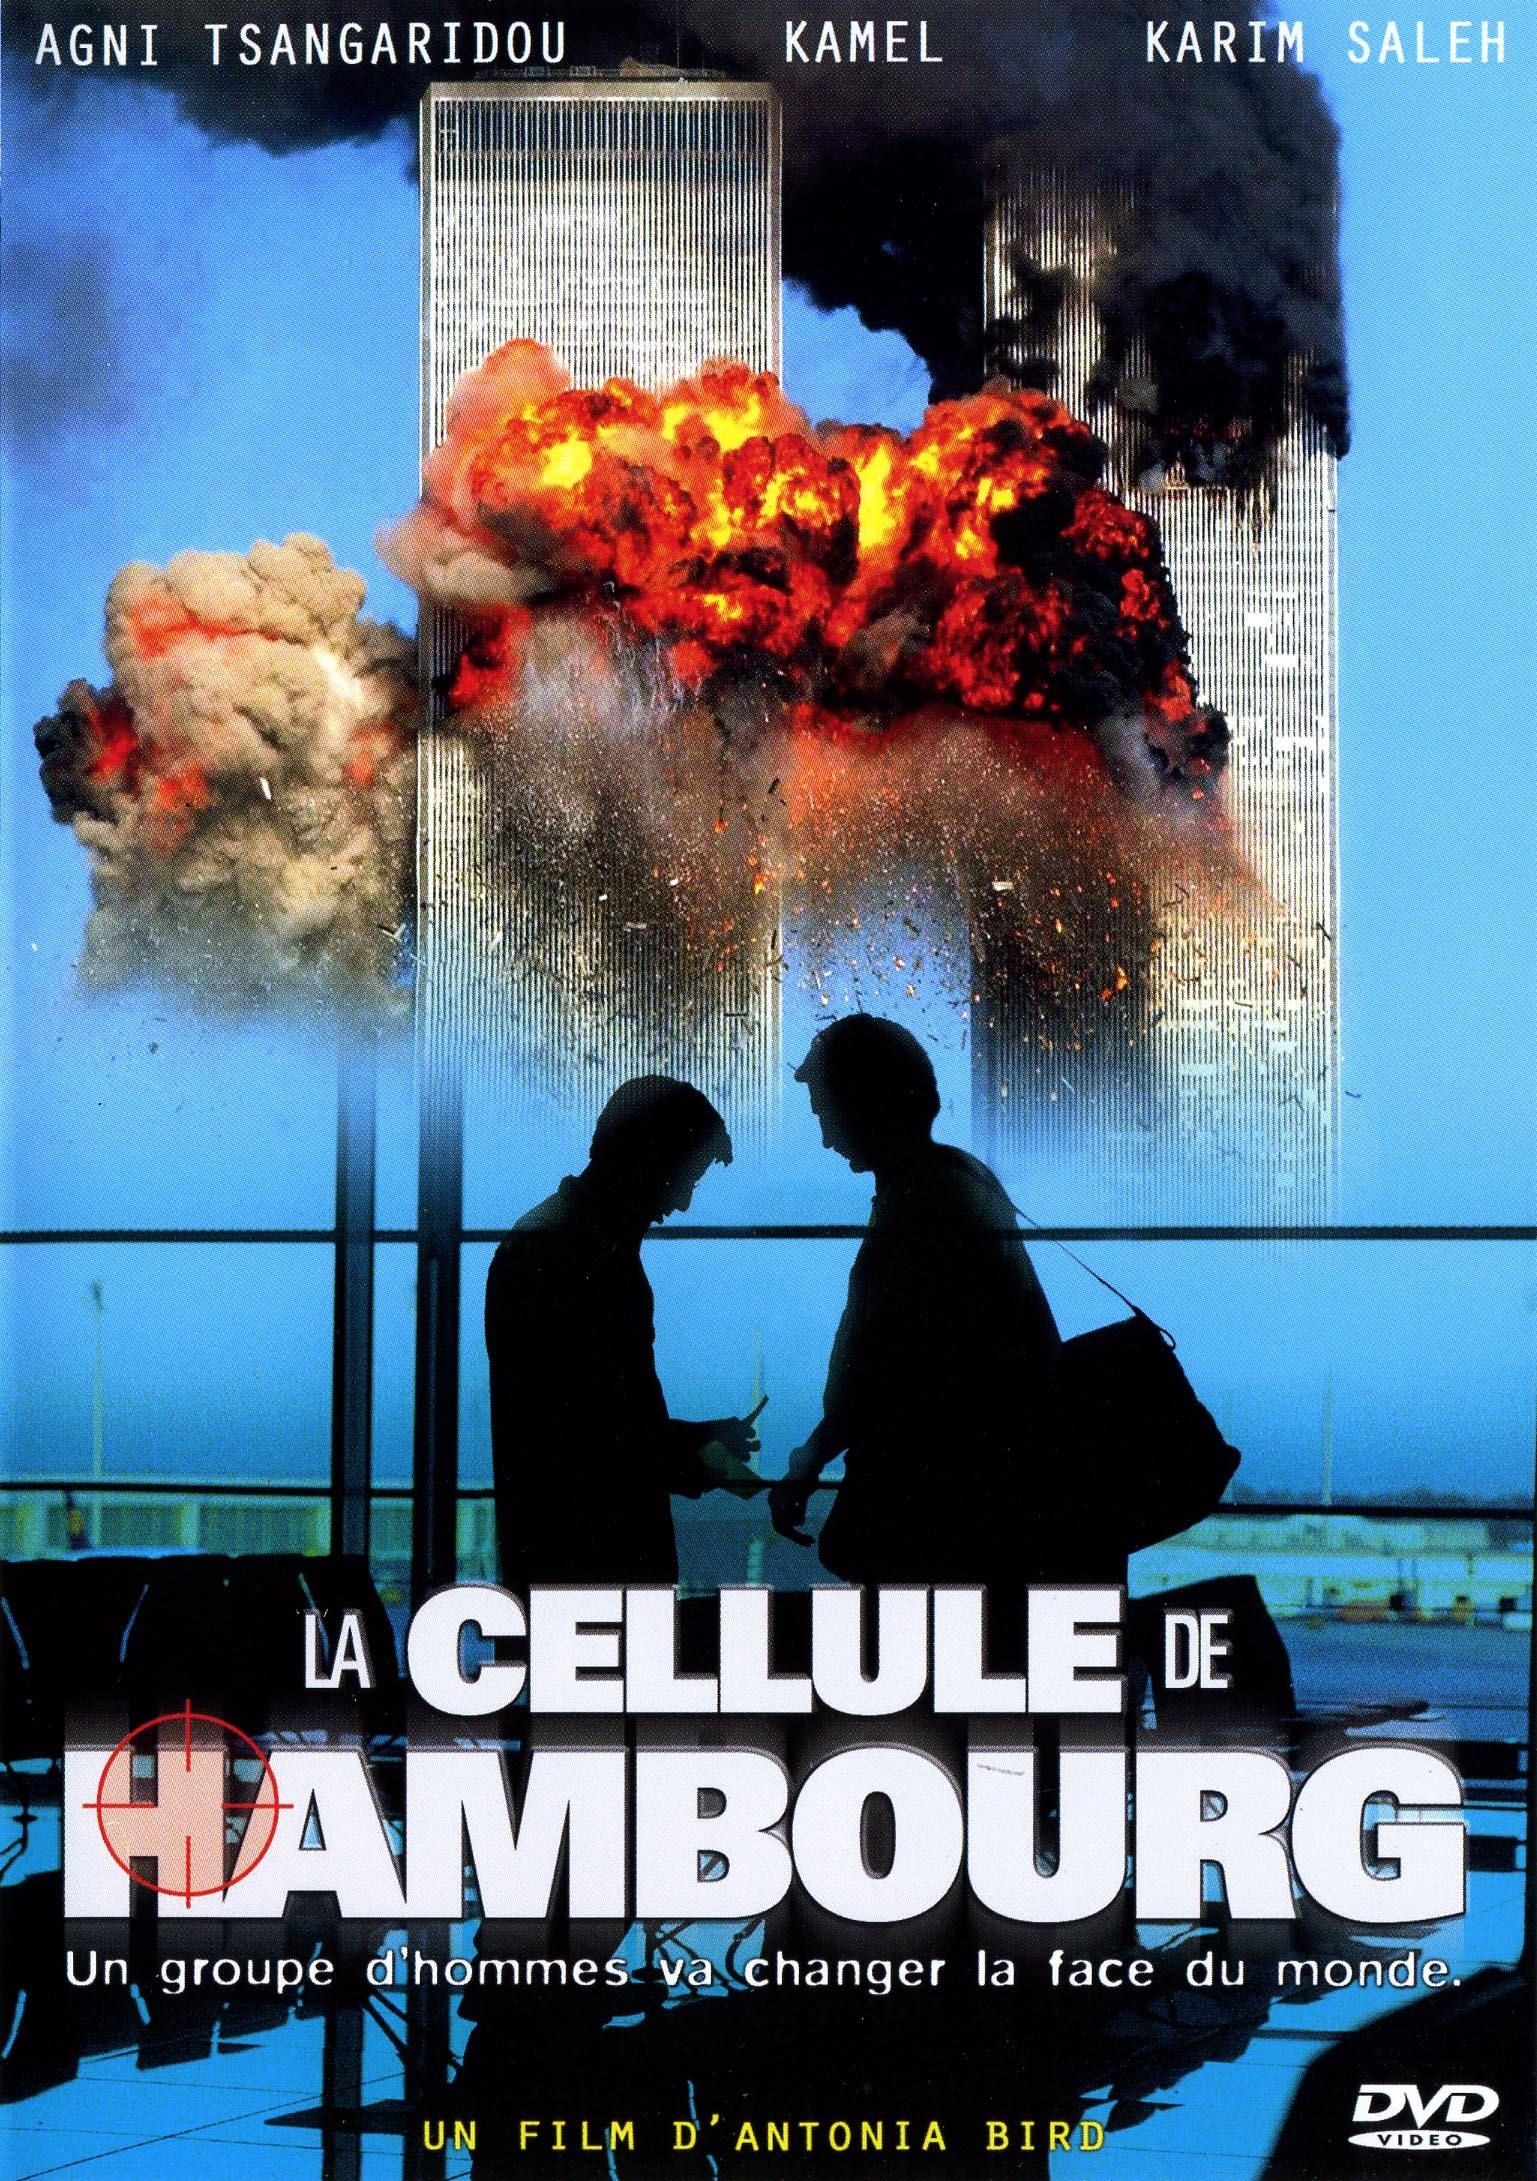 Cellule de hambourg